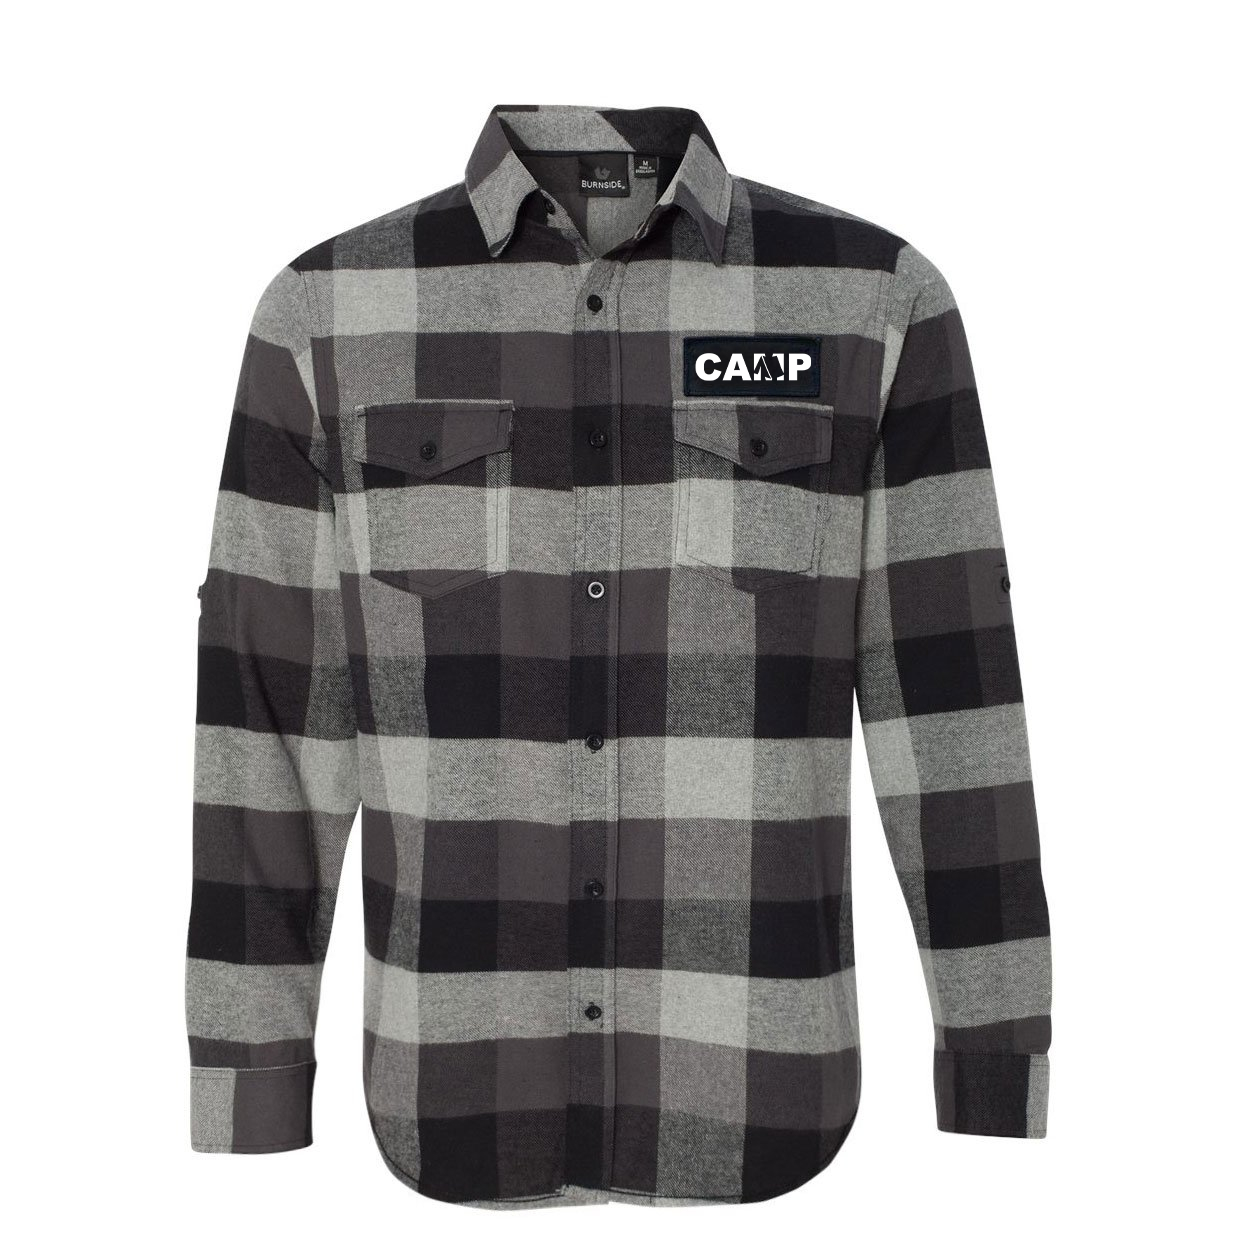 Camp Tent Logo Classic Unisex Long Sleeve Woven Patch Flannel Shirt Black/Gray (White Logo)